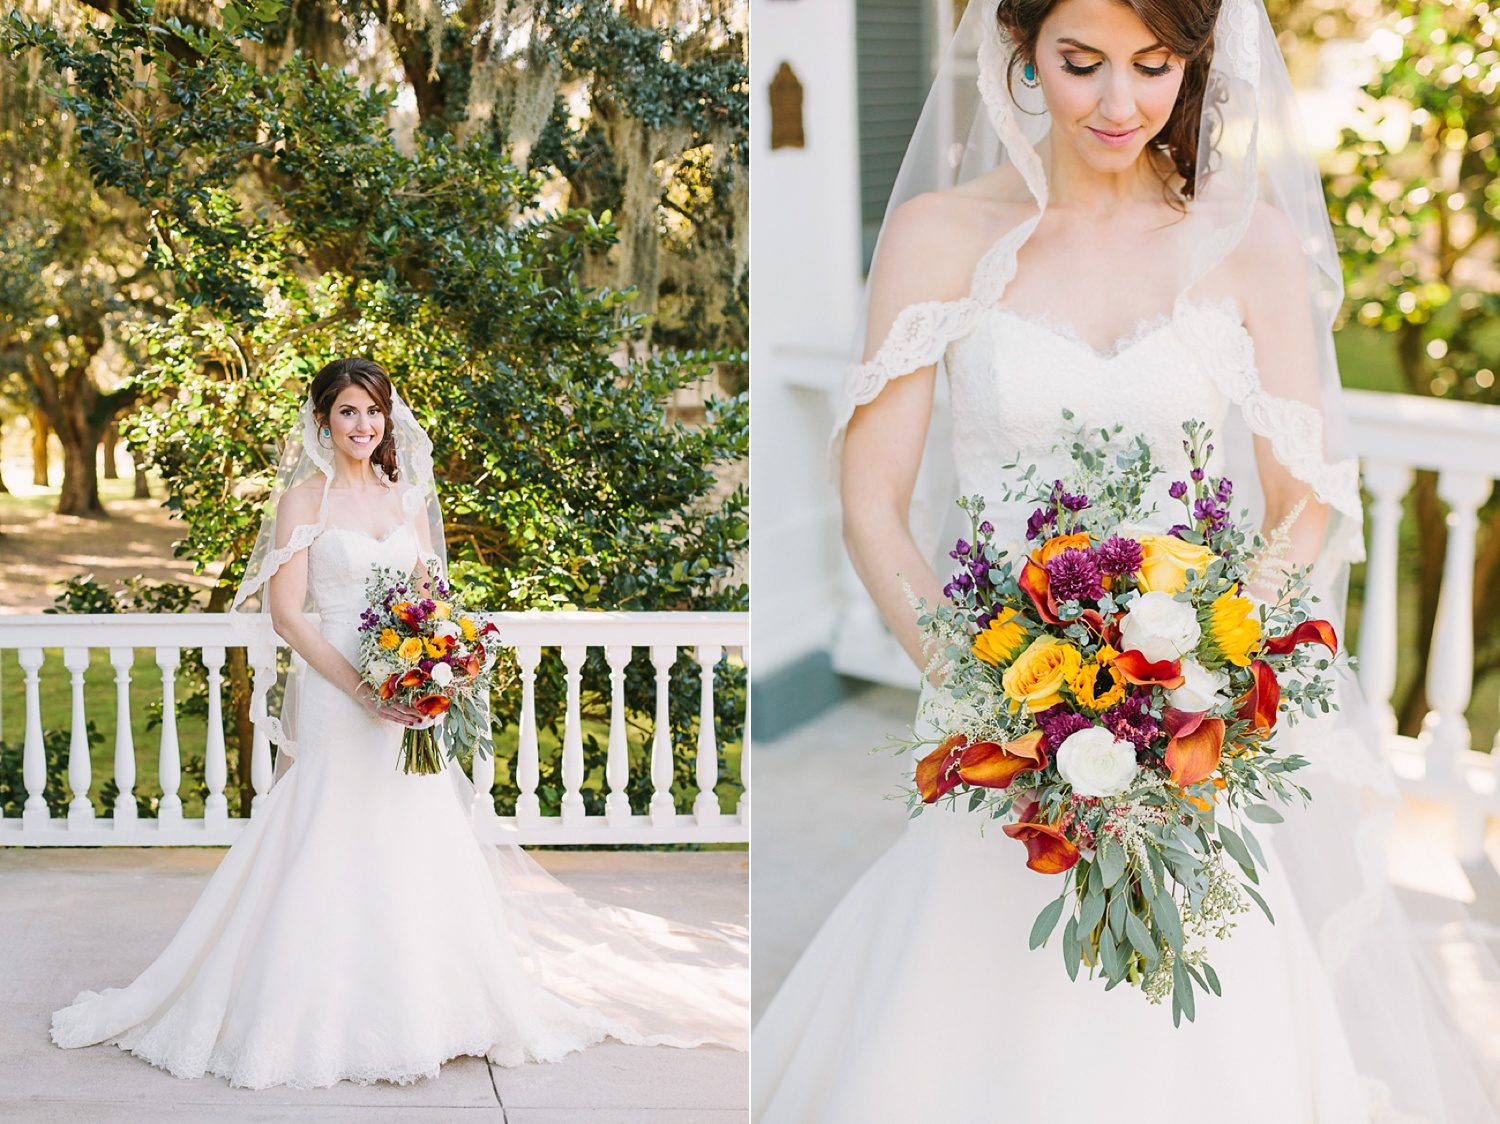 Lindsey_A_Miller_photography_charleston_mcleod_plantation_wedding_row_of_oaks_southern_classic_fall_spanish_moss_historic_home_045.jpg